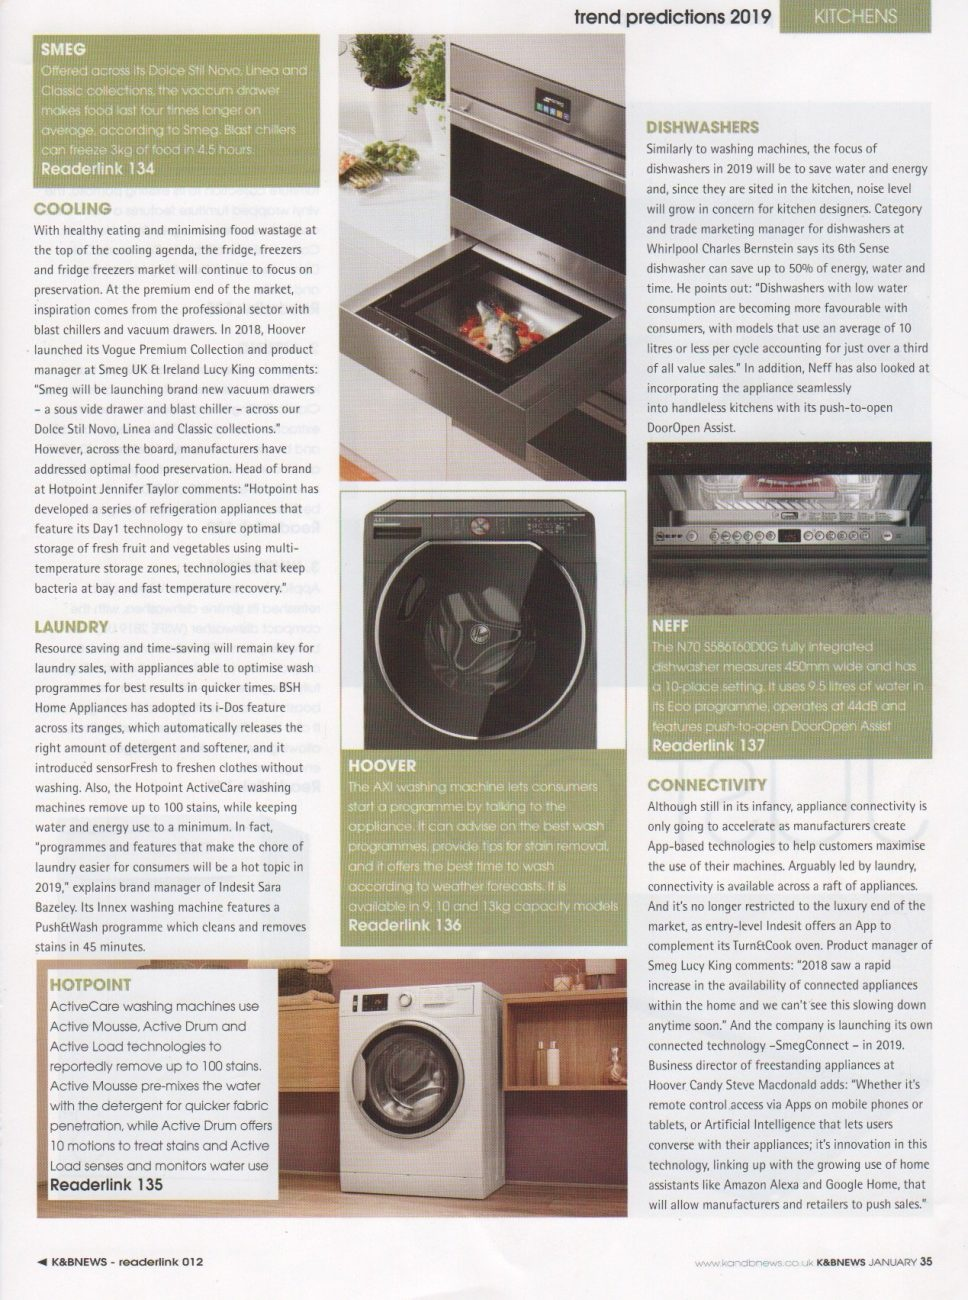 Part 4 of a kitchen trends feature in Kitchens and Bathrooms News magazine